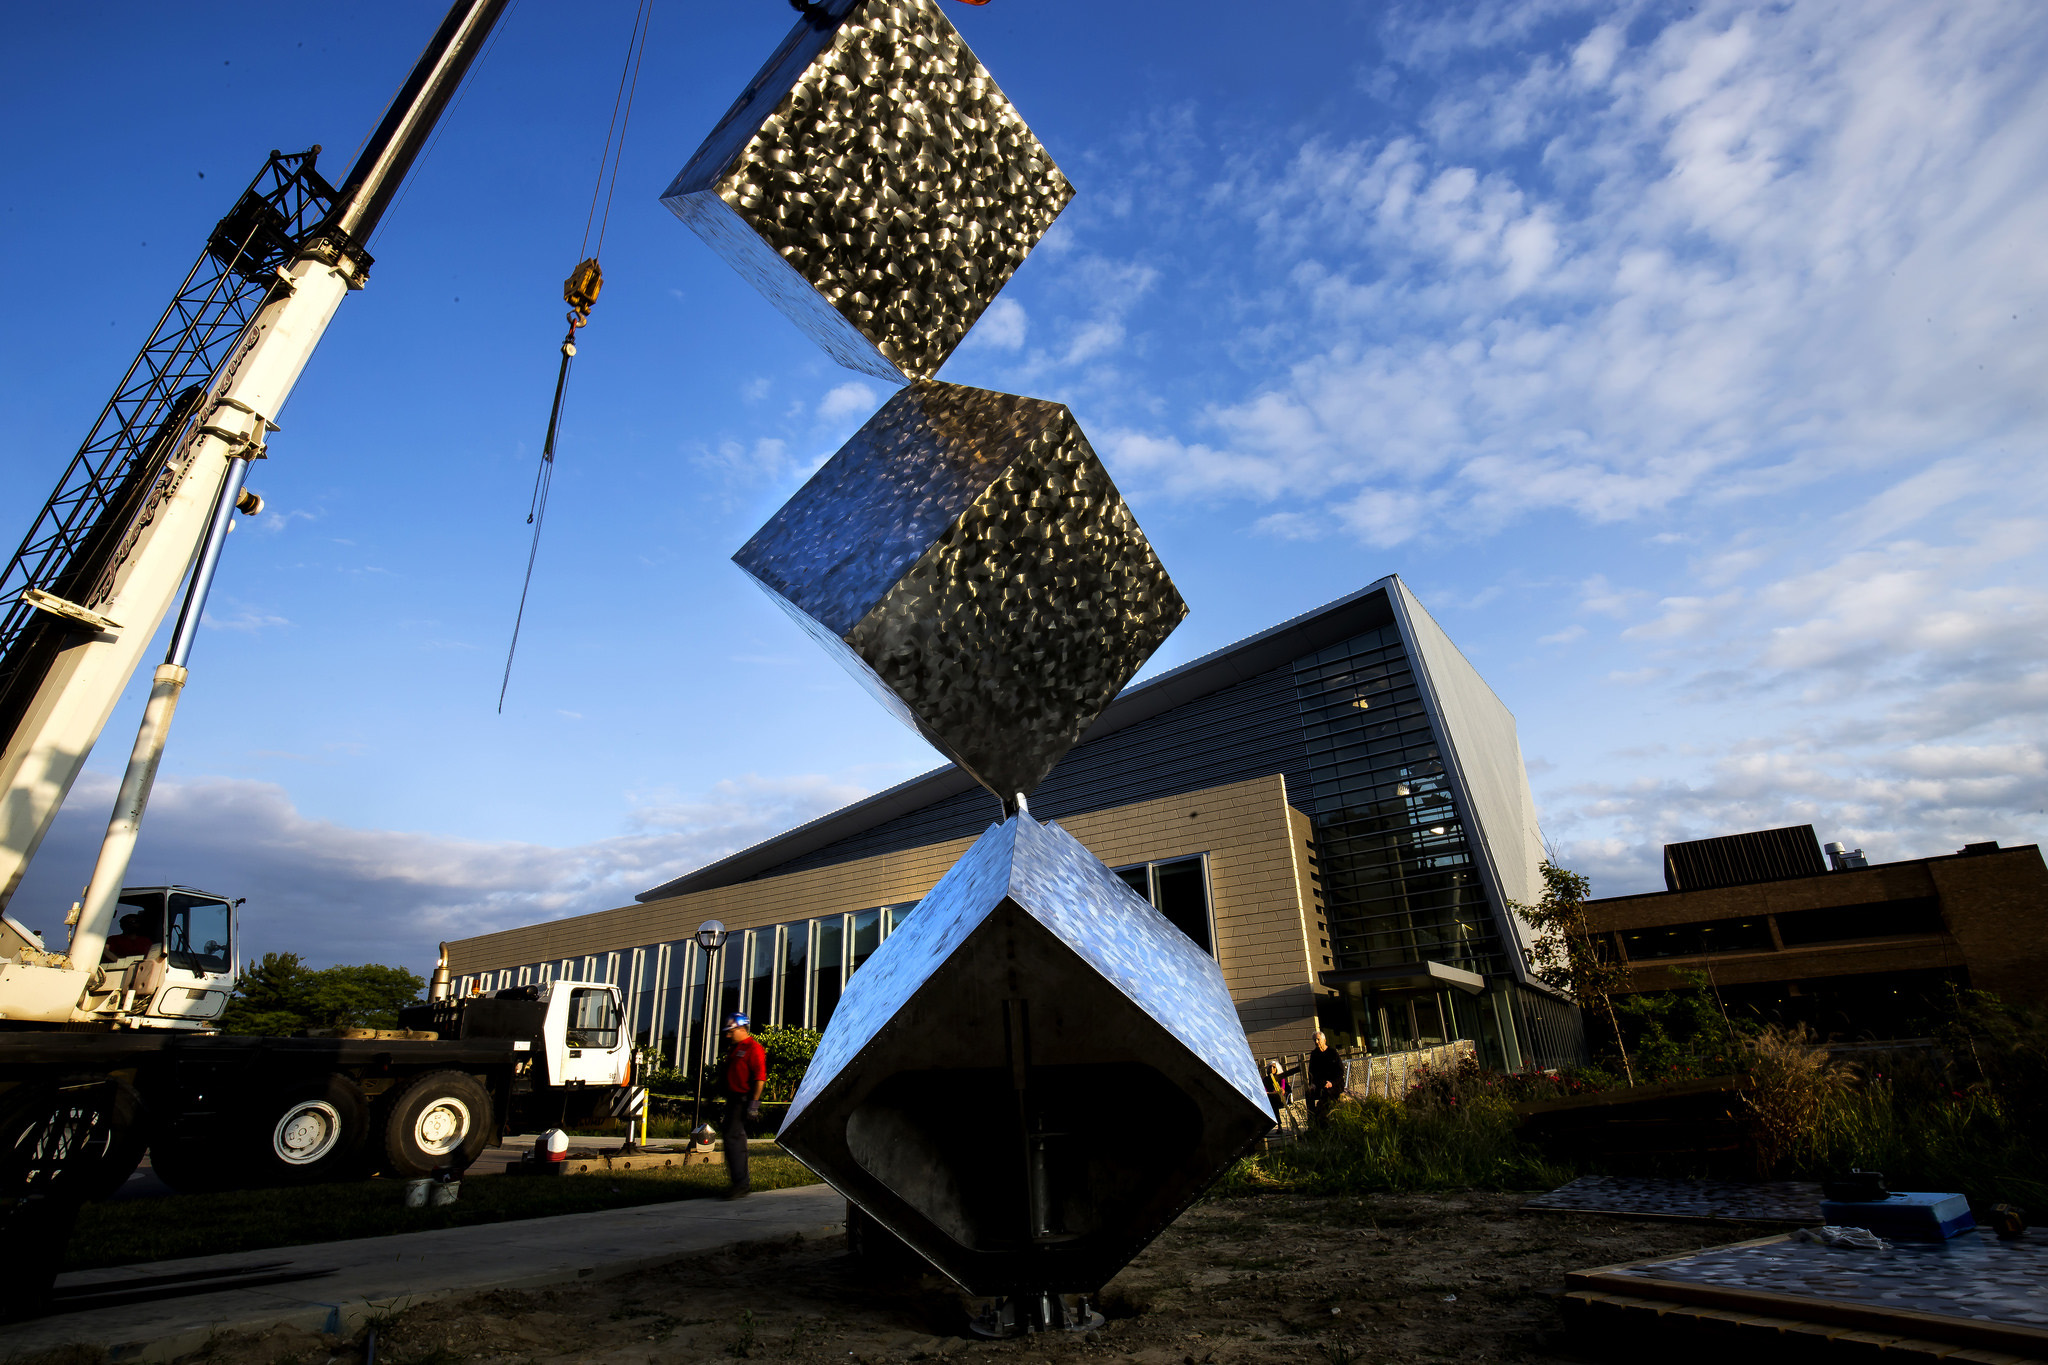 A photograph of an art sculpture in front of the GG Brown Building.